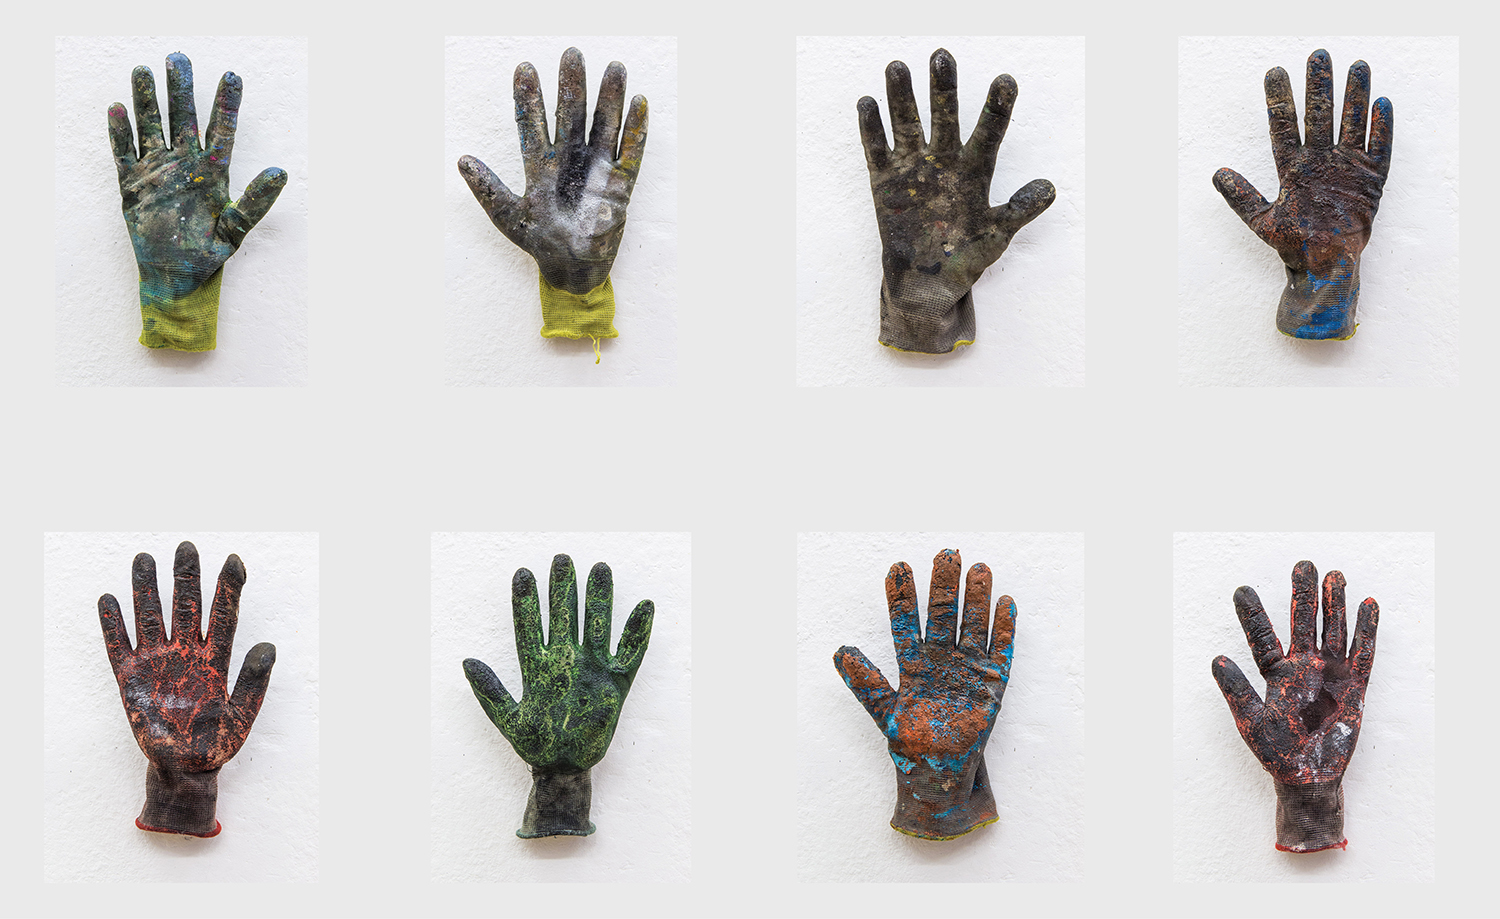 Hand Palette; 2009 to 2019